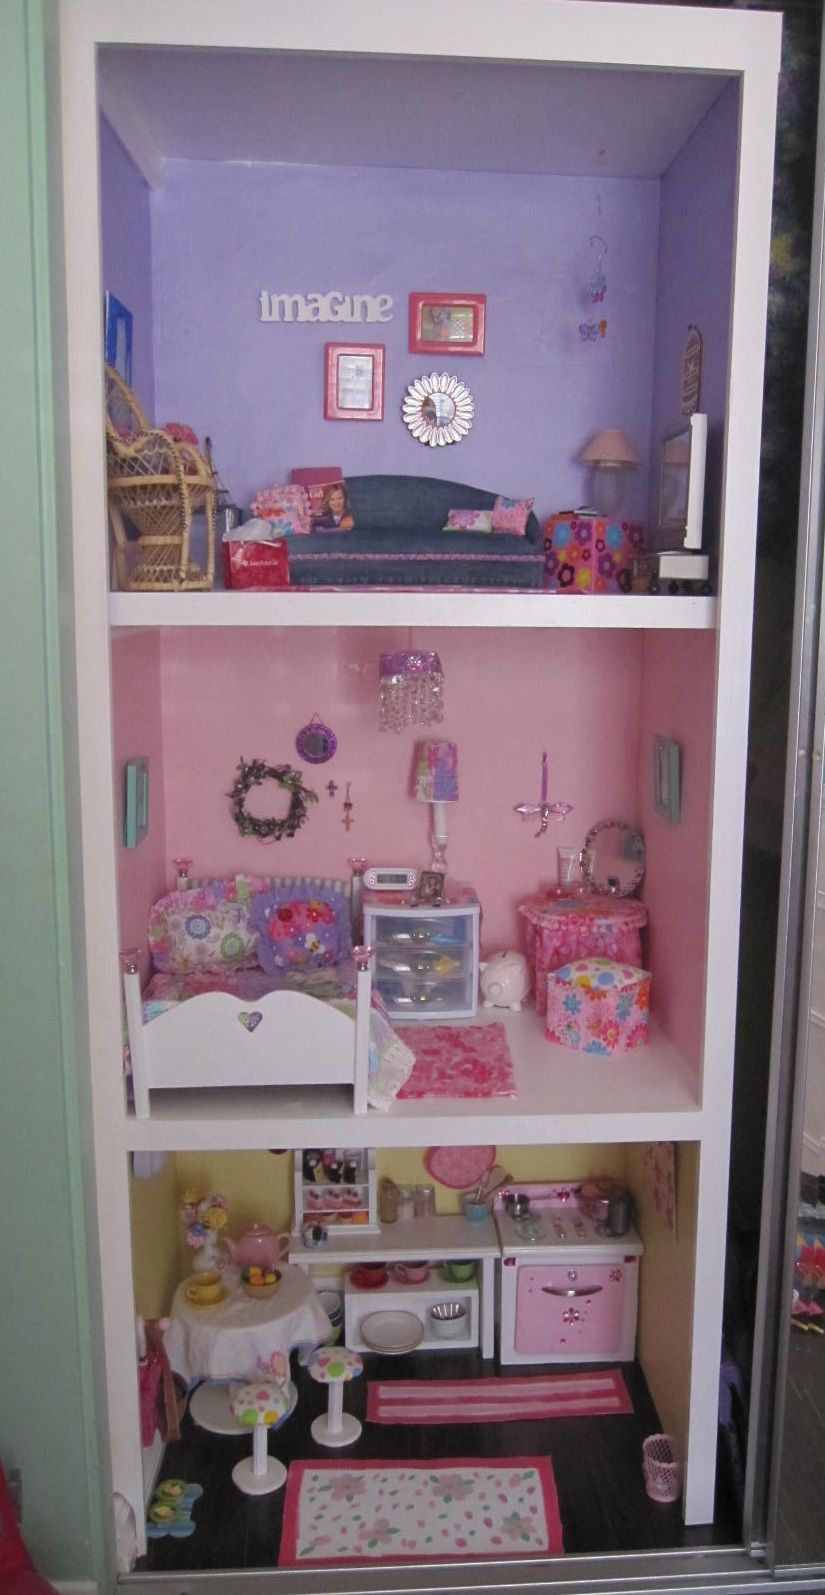 American girl doll house in the closet our american dolls a